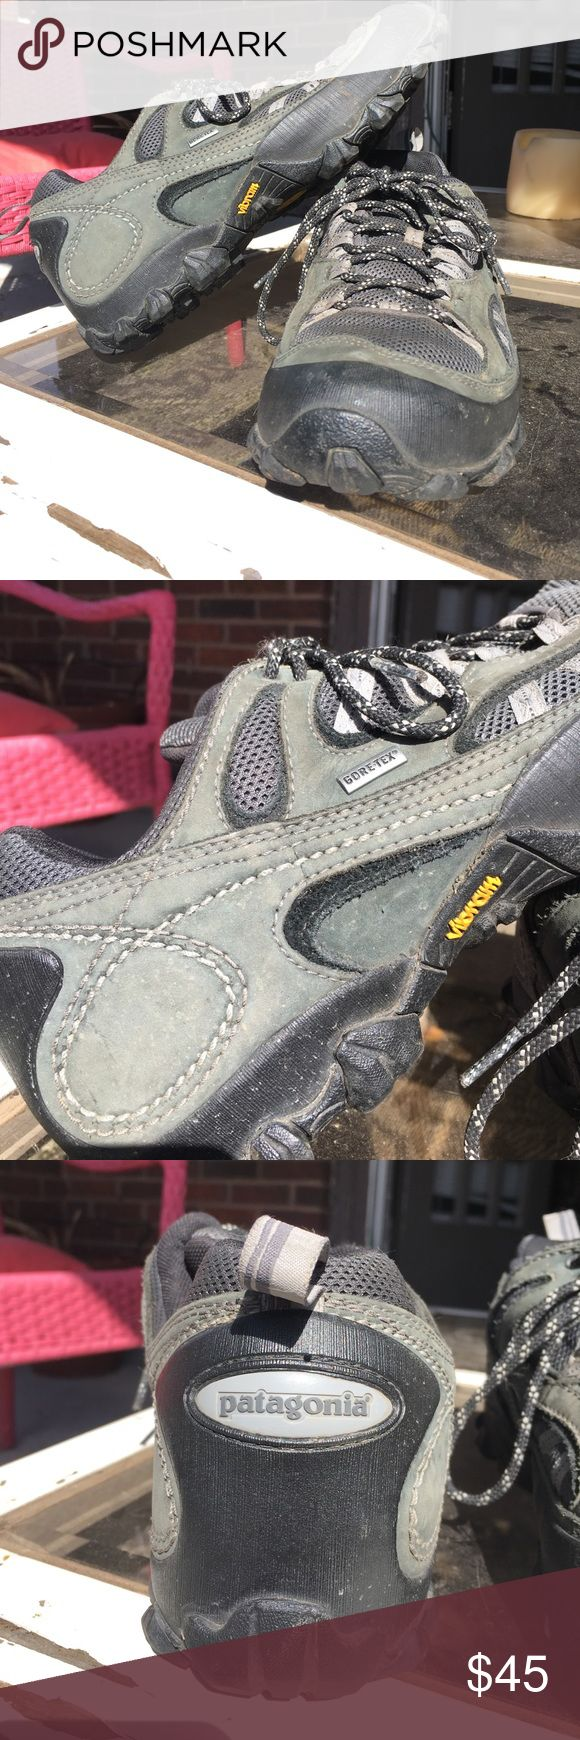 Patagonia Vibram Men's Shoes Size 9, Hardly worn. In great condition. Gore-tex Vibram Sneakers. Forge Grey and waterproof. Patagonia no longer makes shoes so these won't be around long! Feel free to ask any and all questions! Patagonia Shoes Athletic Shoes